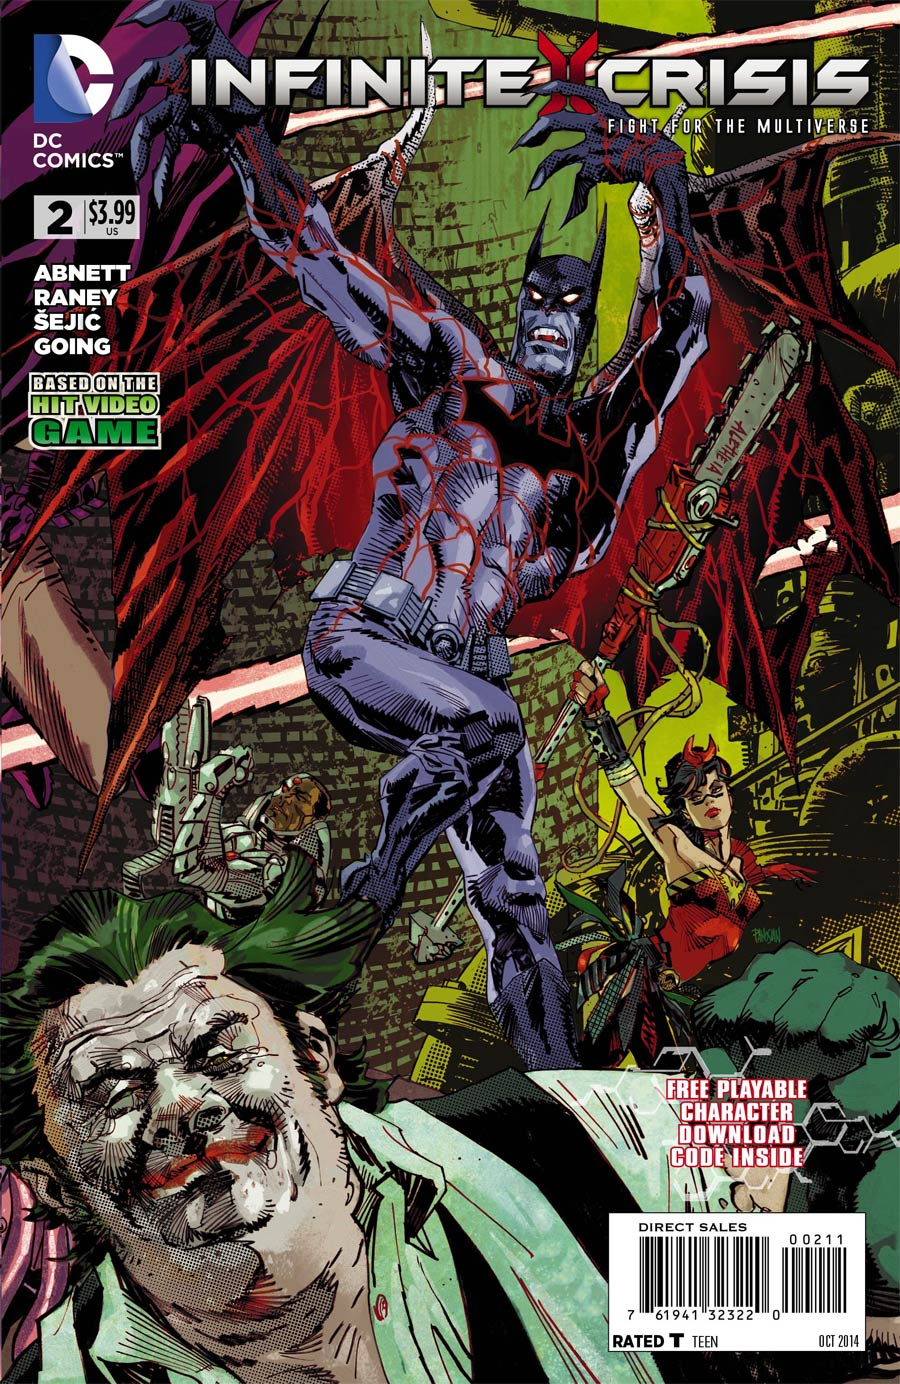 Infinite Crisis Fight For The Multiverse #2 Cover A With Polybag